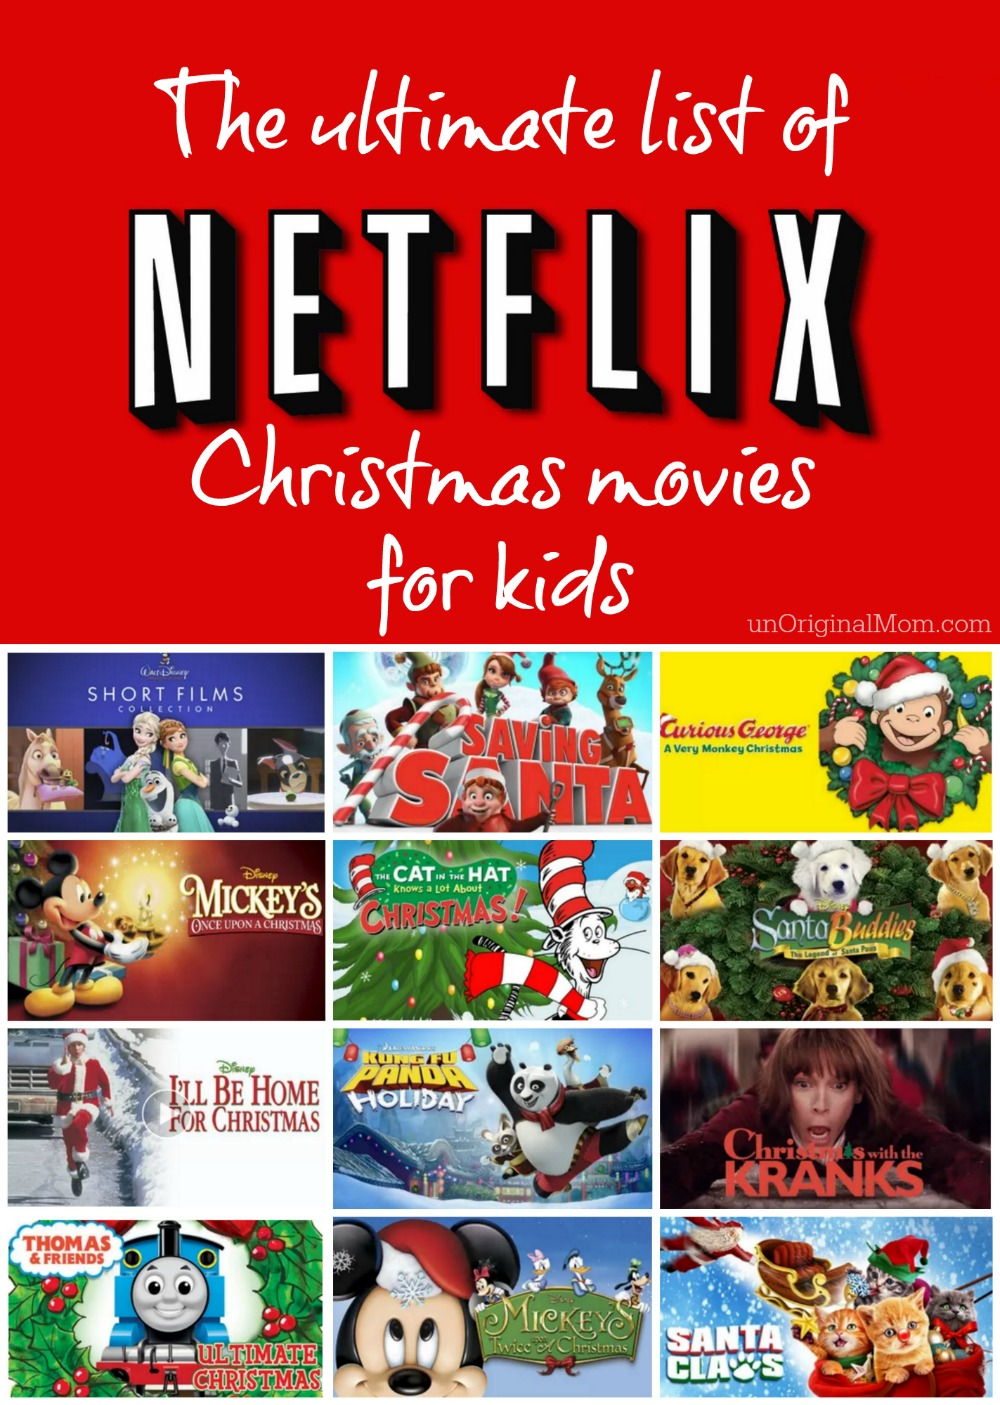 A great list of Netflix Christmas movies for kids - we have to watch a few of these before Christmas!